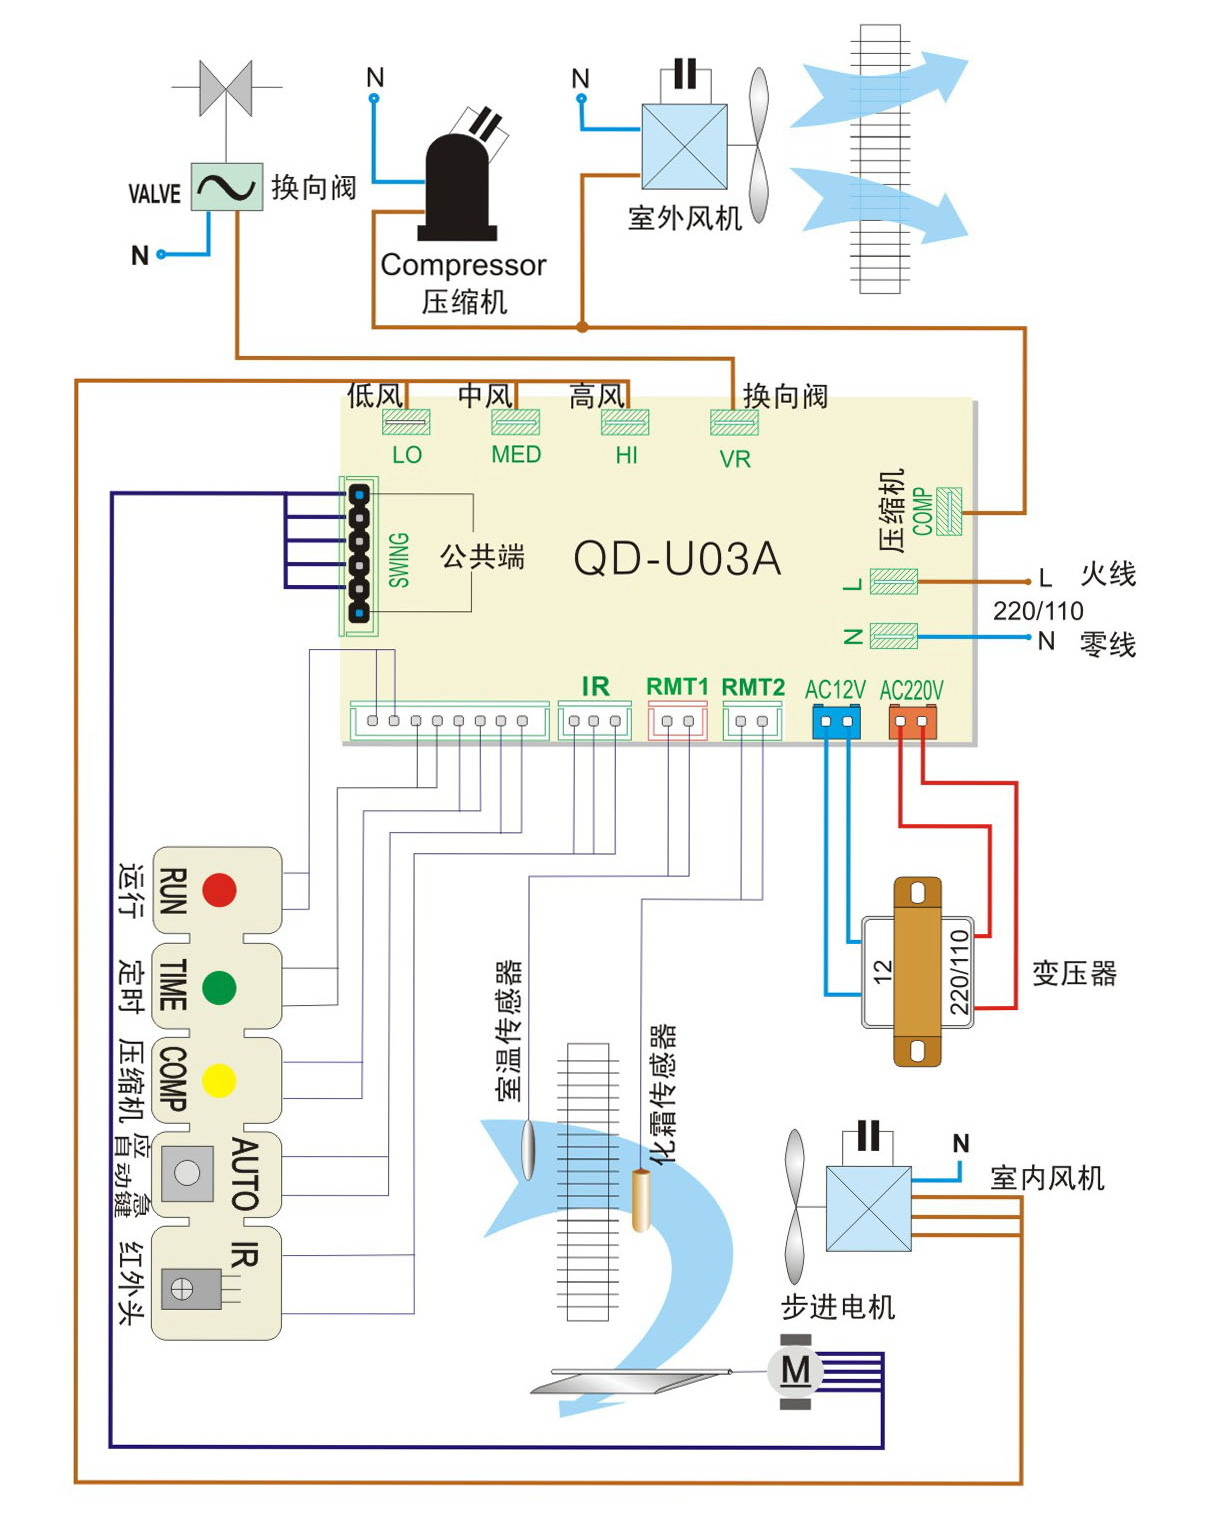 Universal Air Conditioner Pcb Qd U03c Qingdao Wisdom Circuit Board A C Control System Double Sensor Auto Restart Function Outdoor Fan Is Controlled Independently